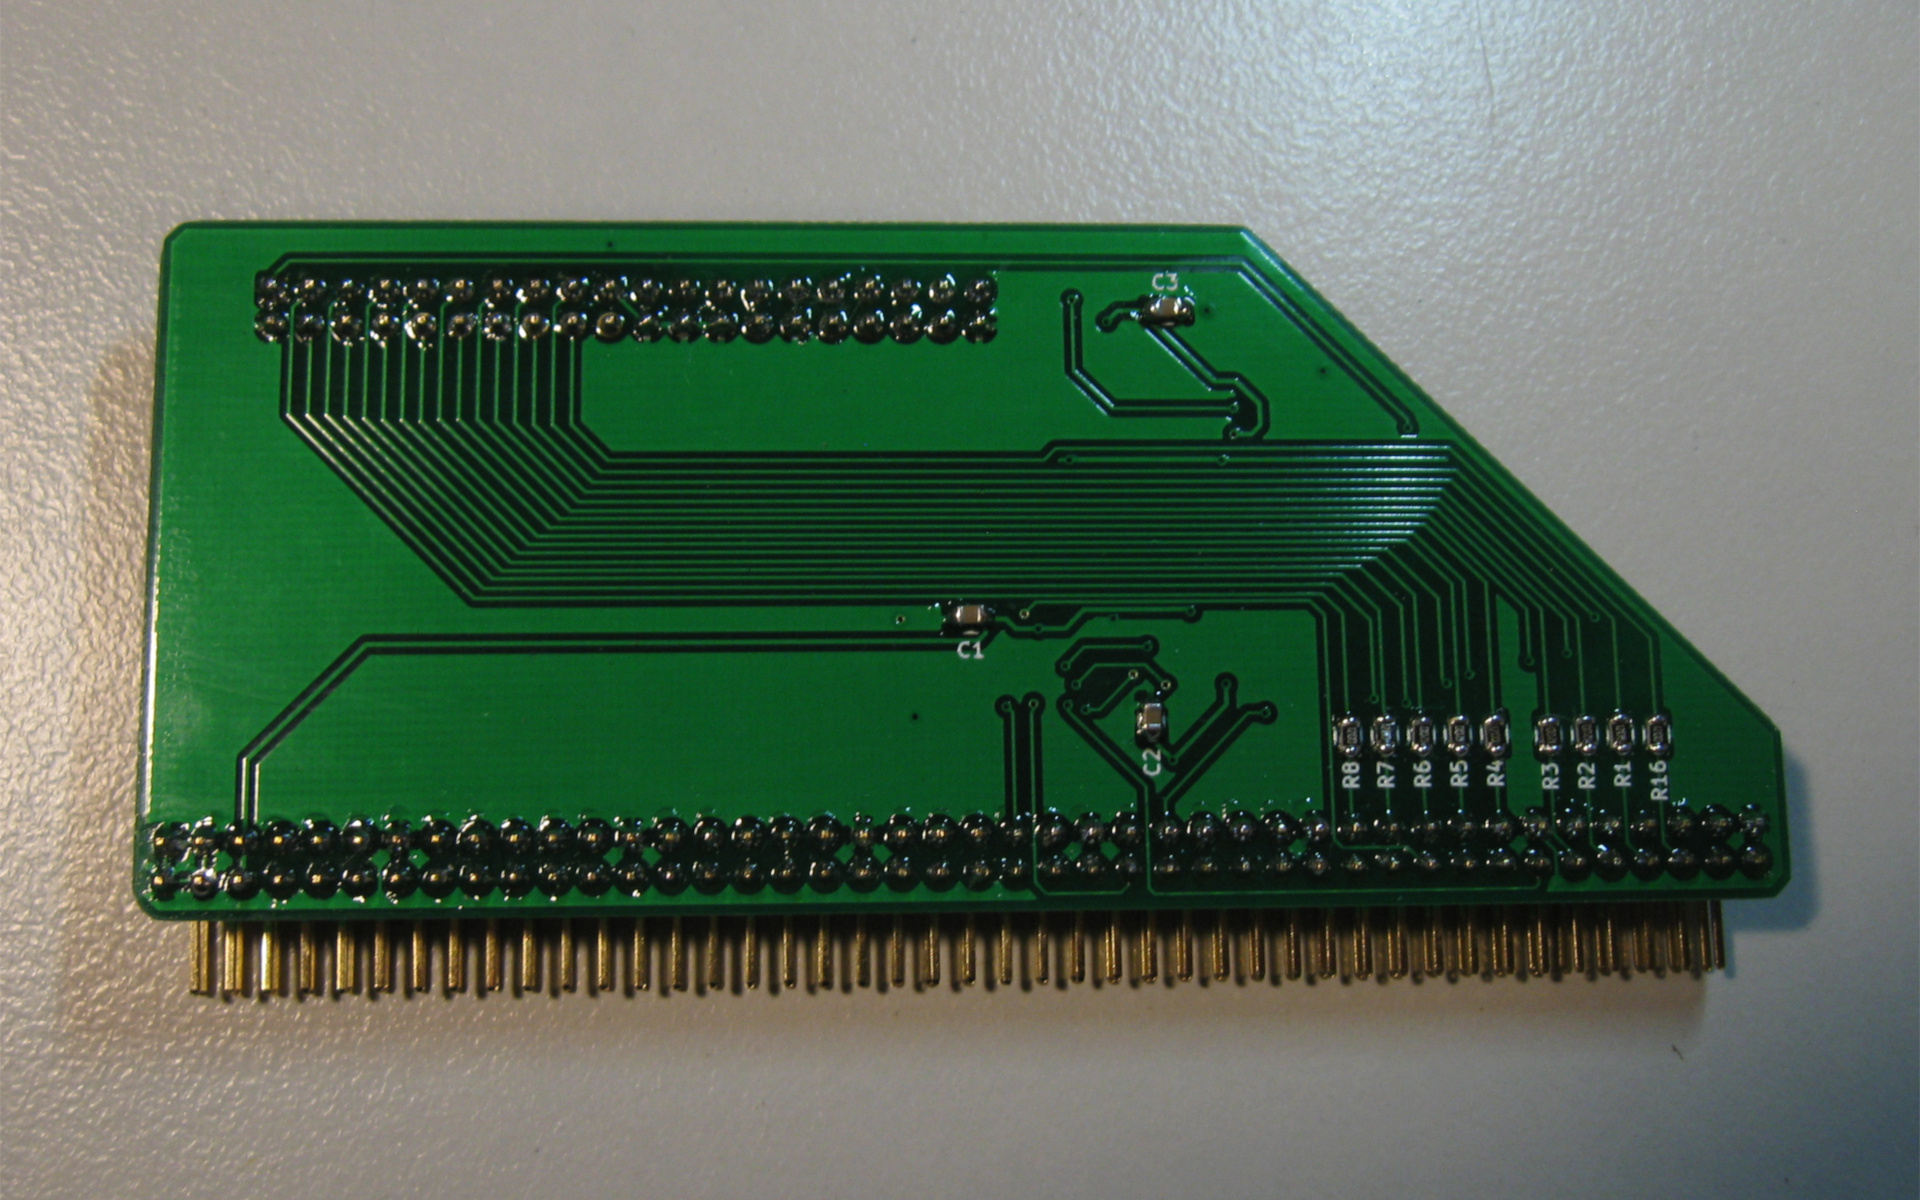 Amiga 500 Ata Hard Disk Interface Drive Circuit Board Pcb Hdd Connected To The Front Back